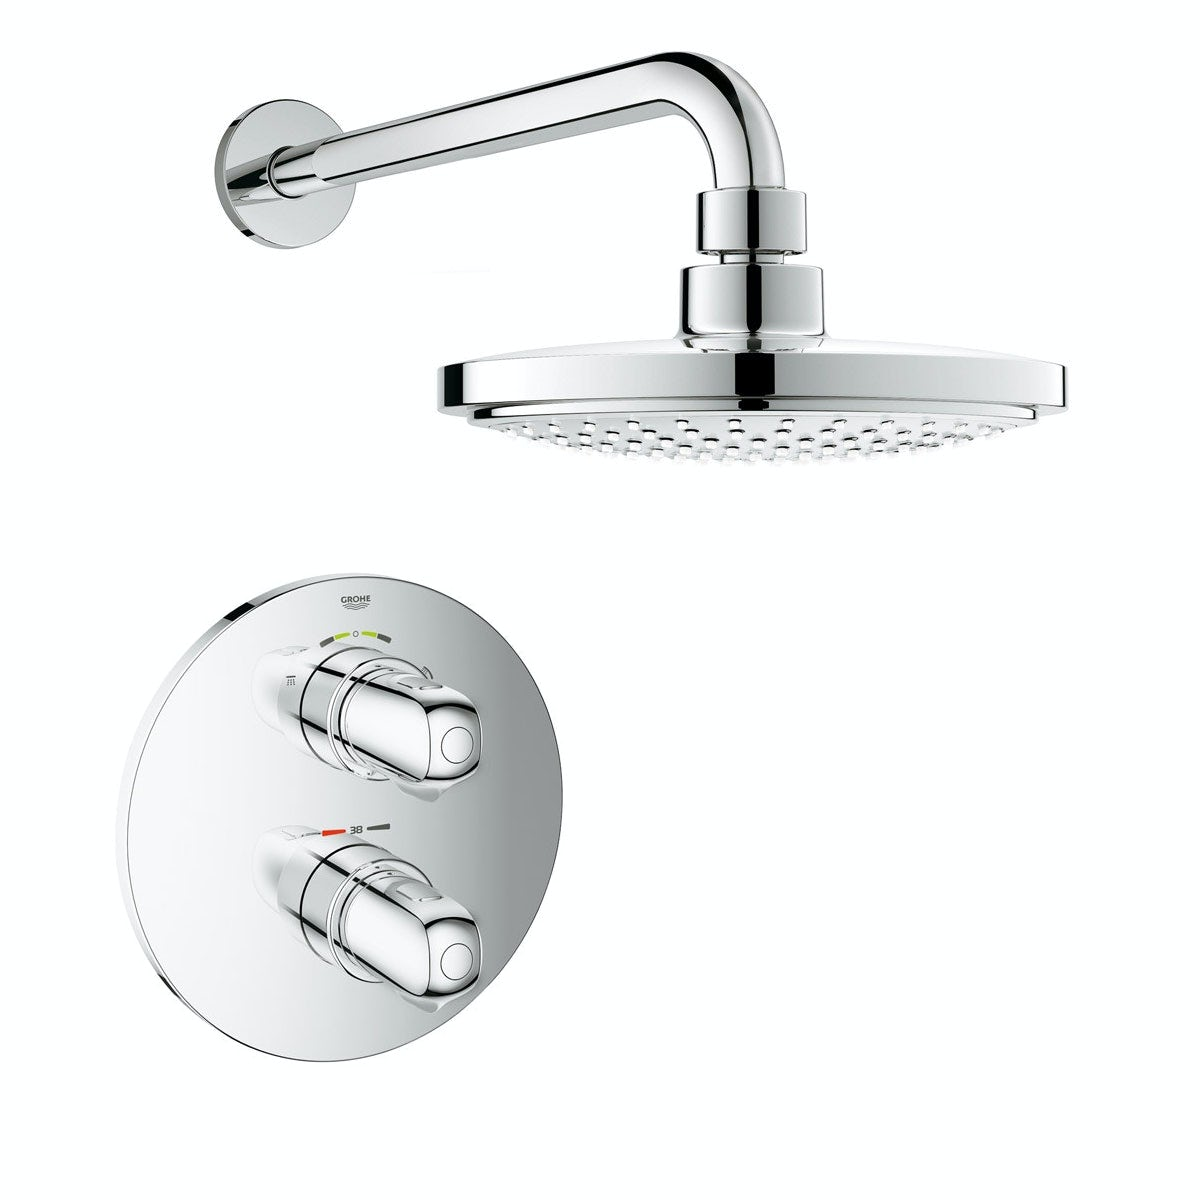 Grohe Grohtherm 1000 Concealed Thermostatic Shower Set